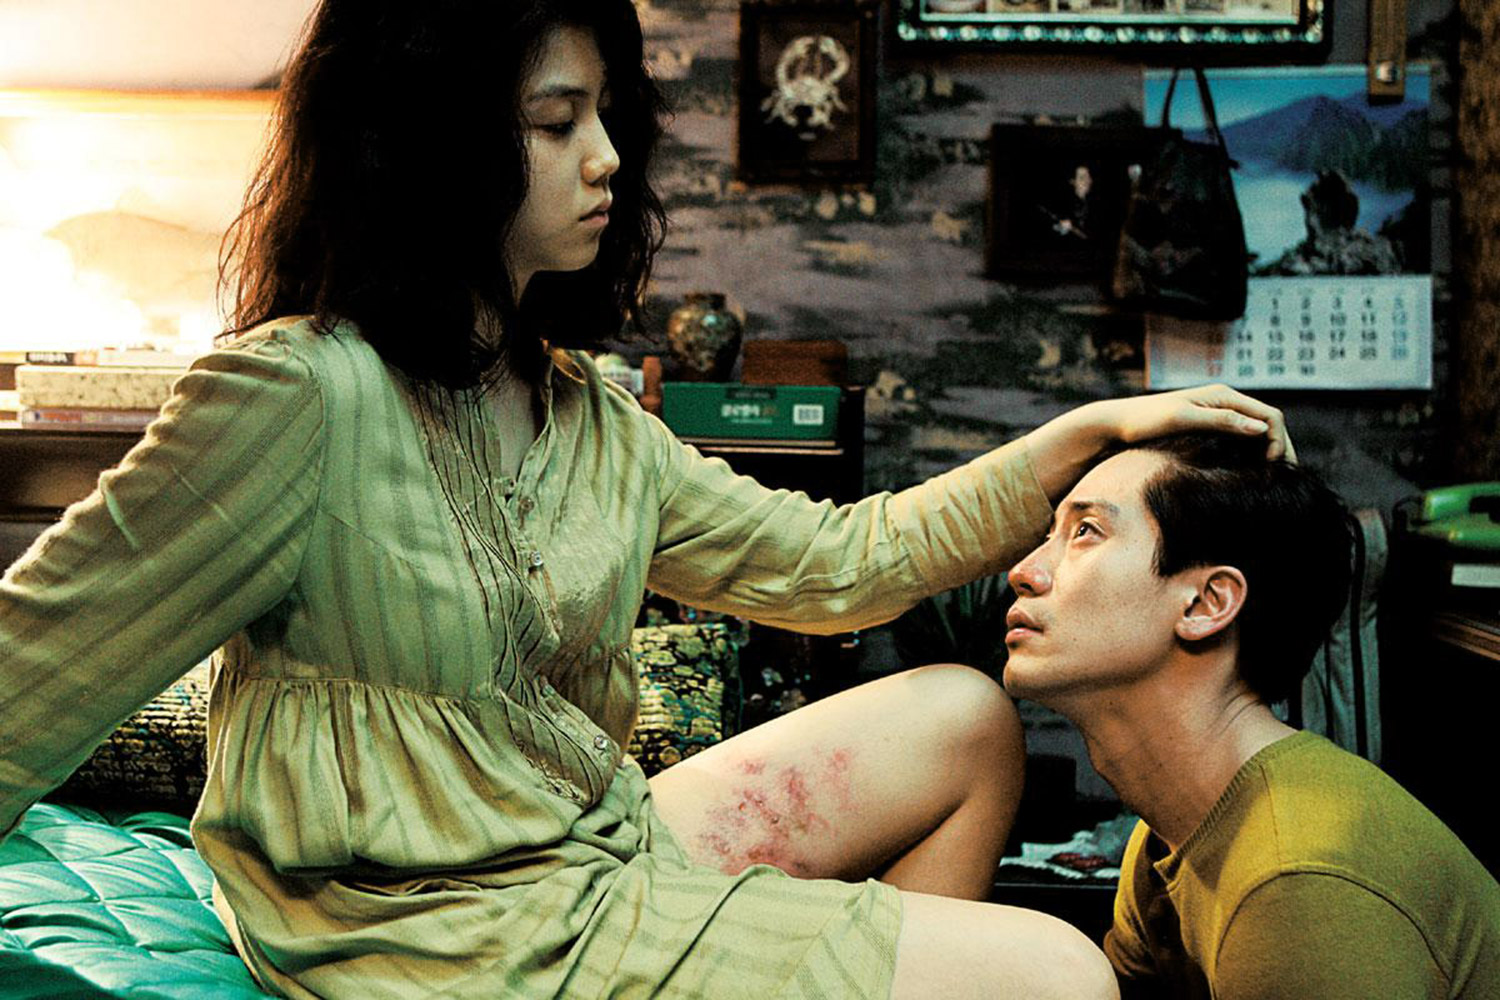 Dark Korean Erotic Films - Thirst, intimacy